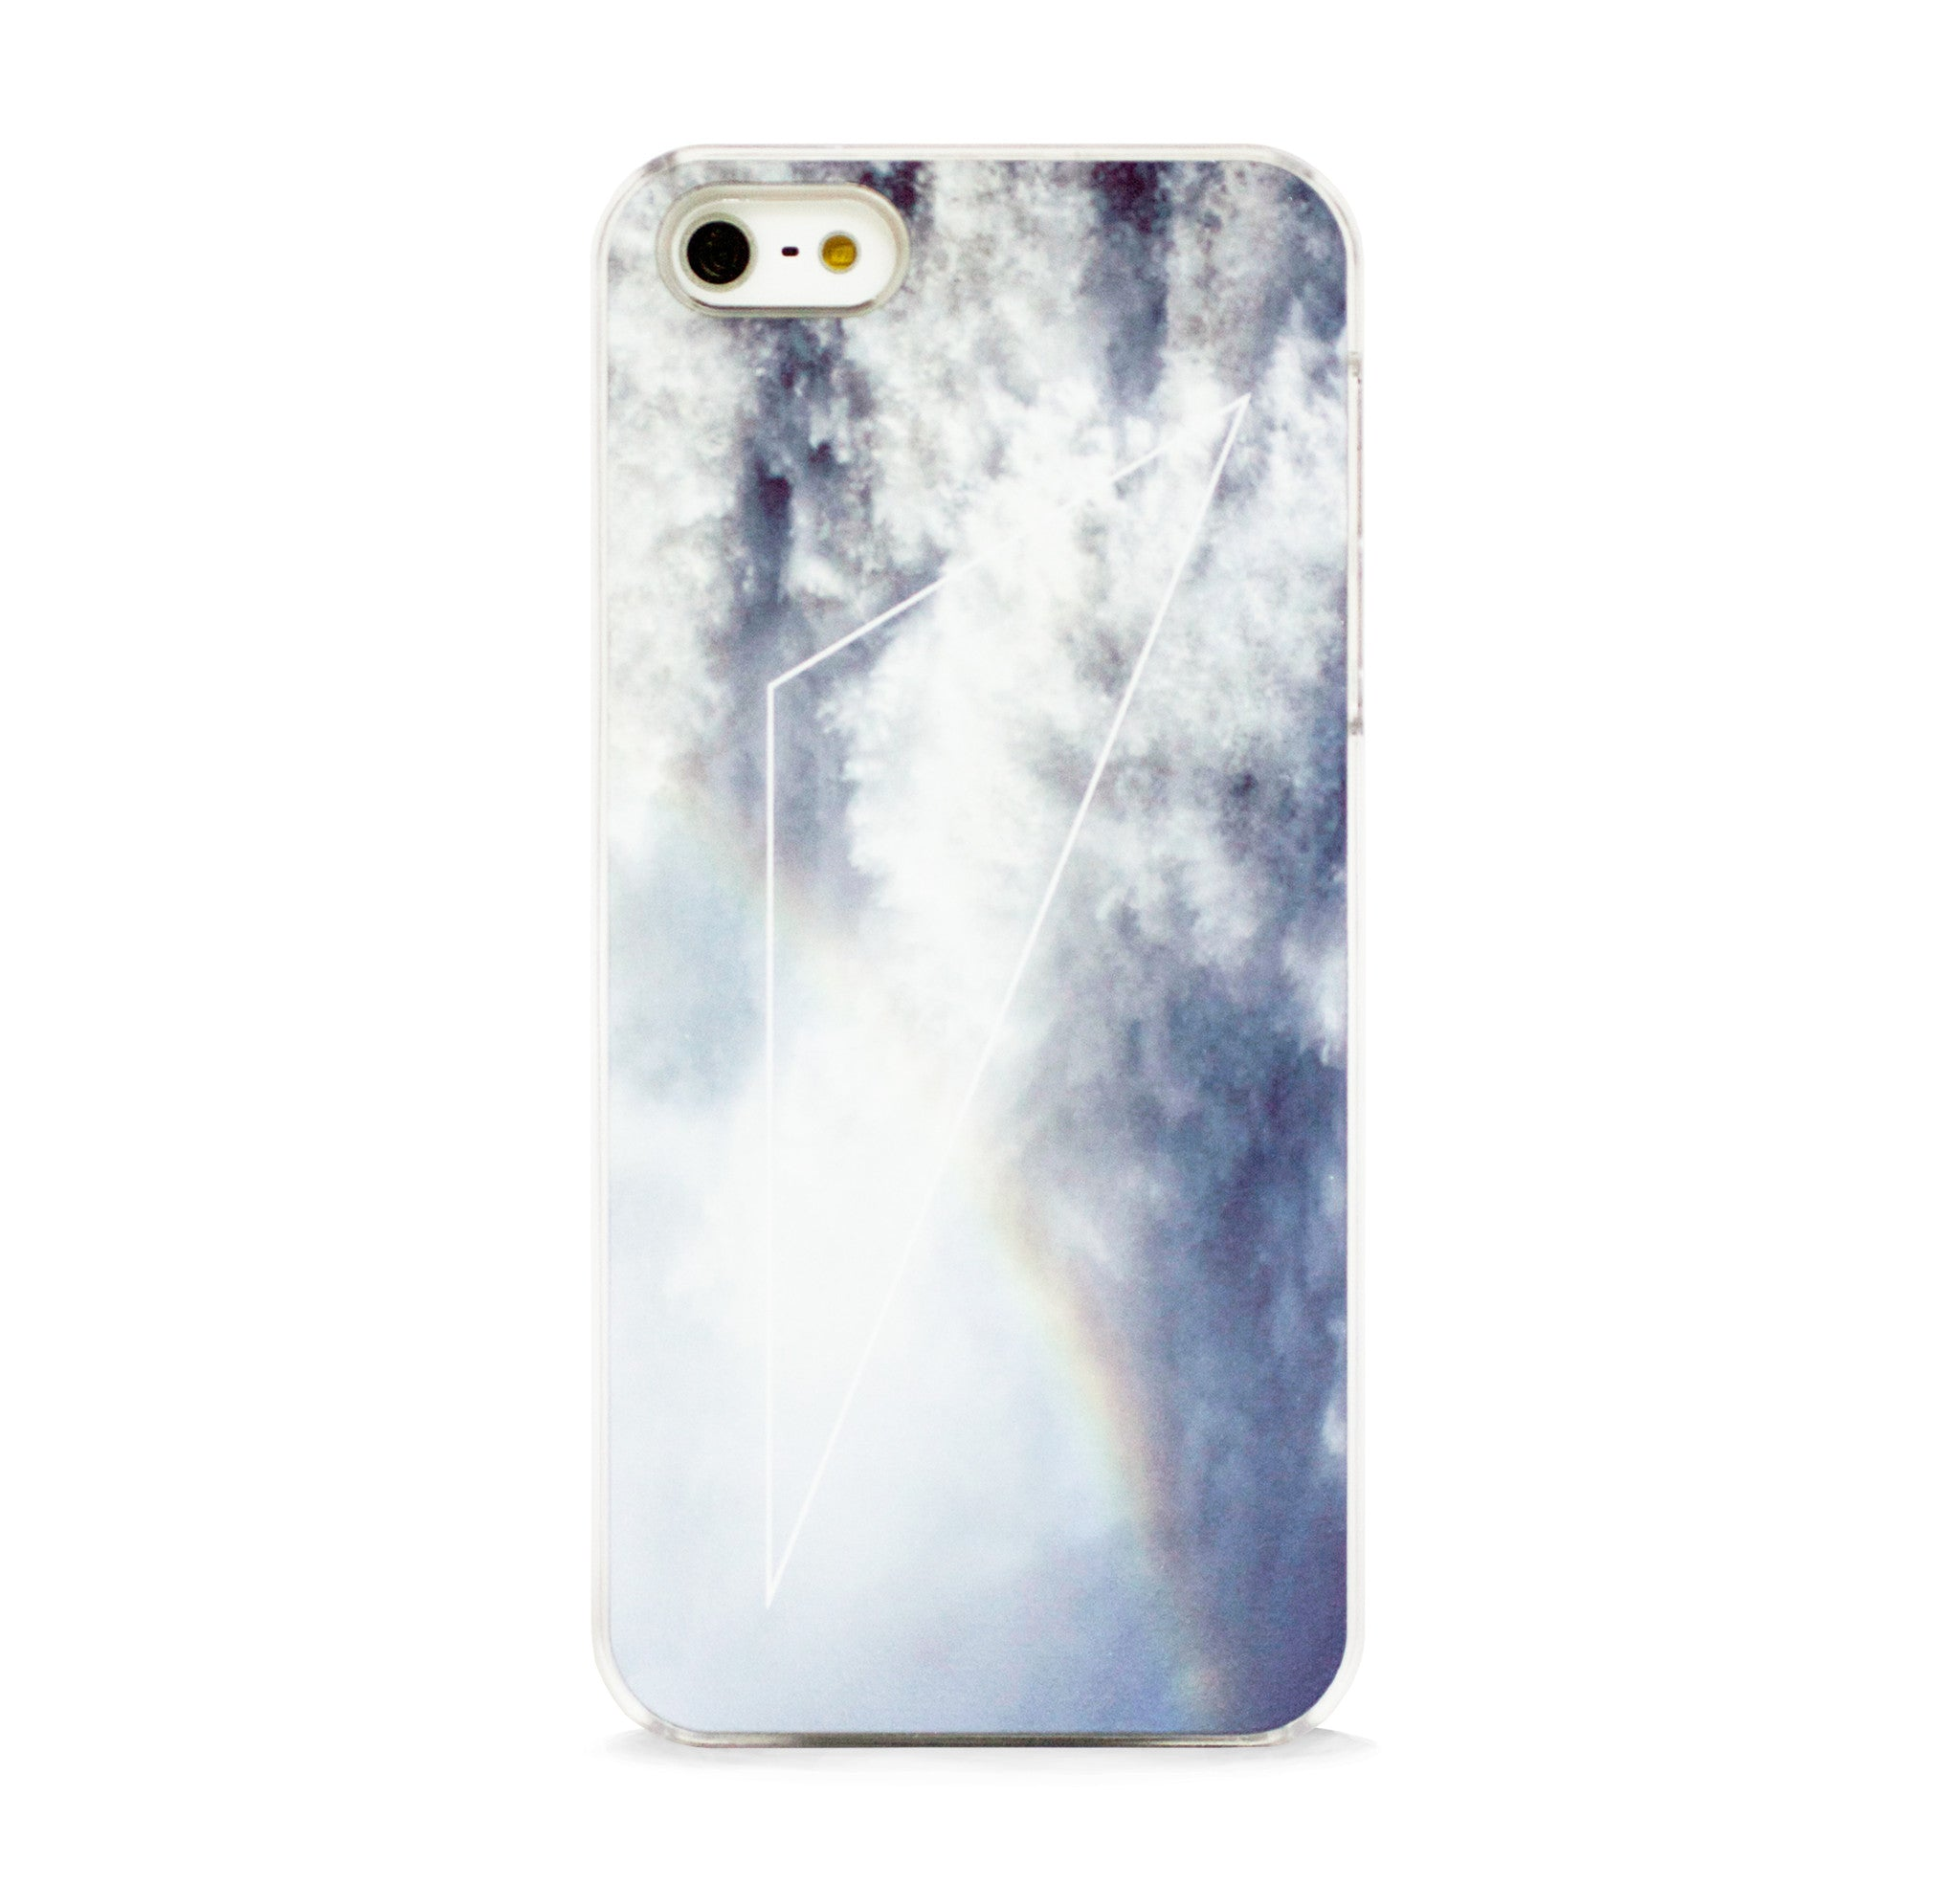 GEO NATURE WATERFALL FOR IPHONE 5/5S